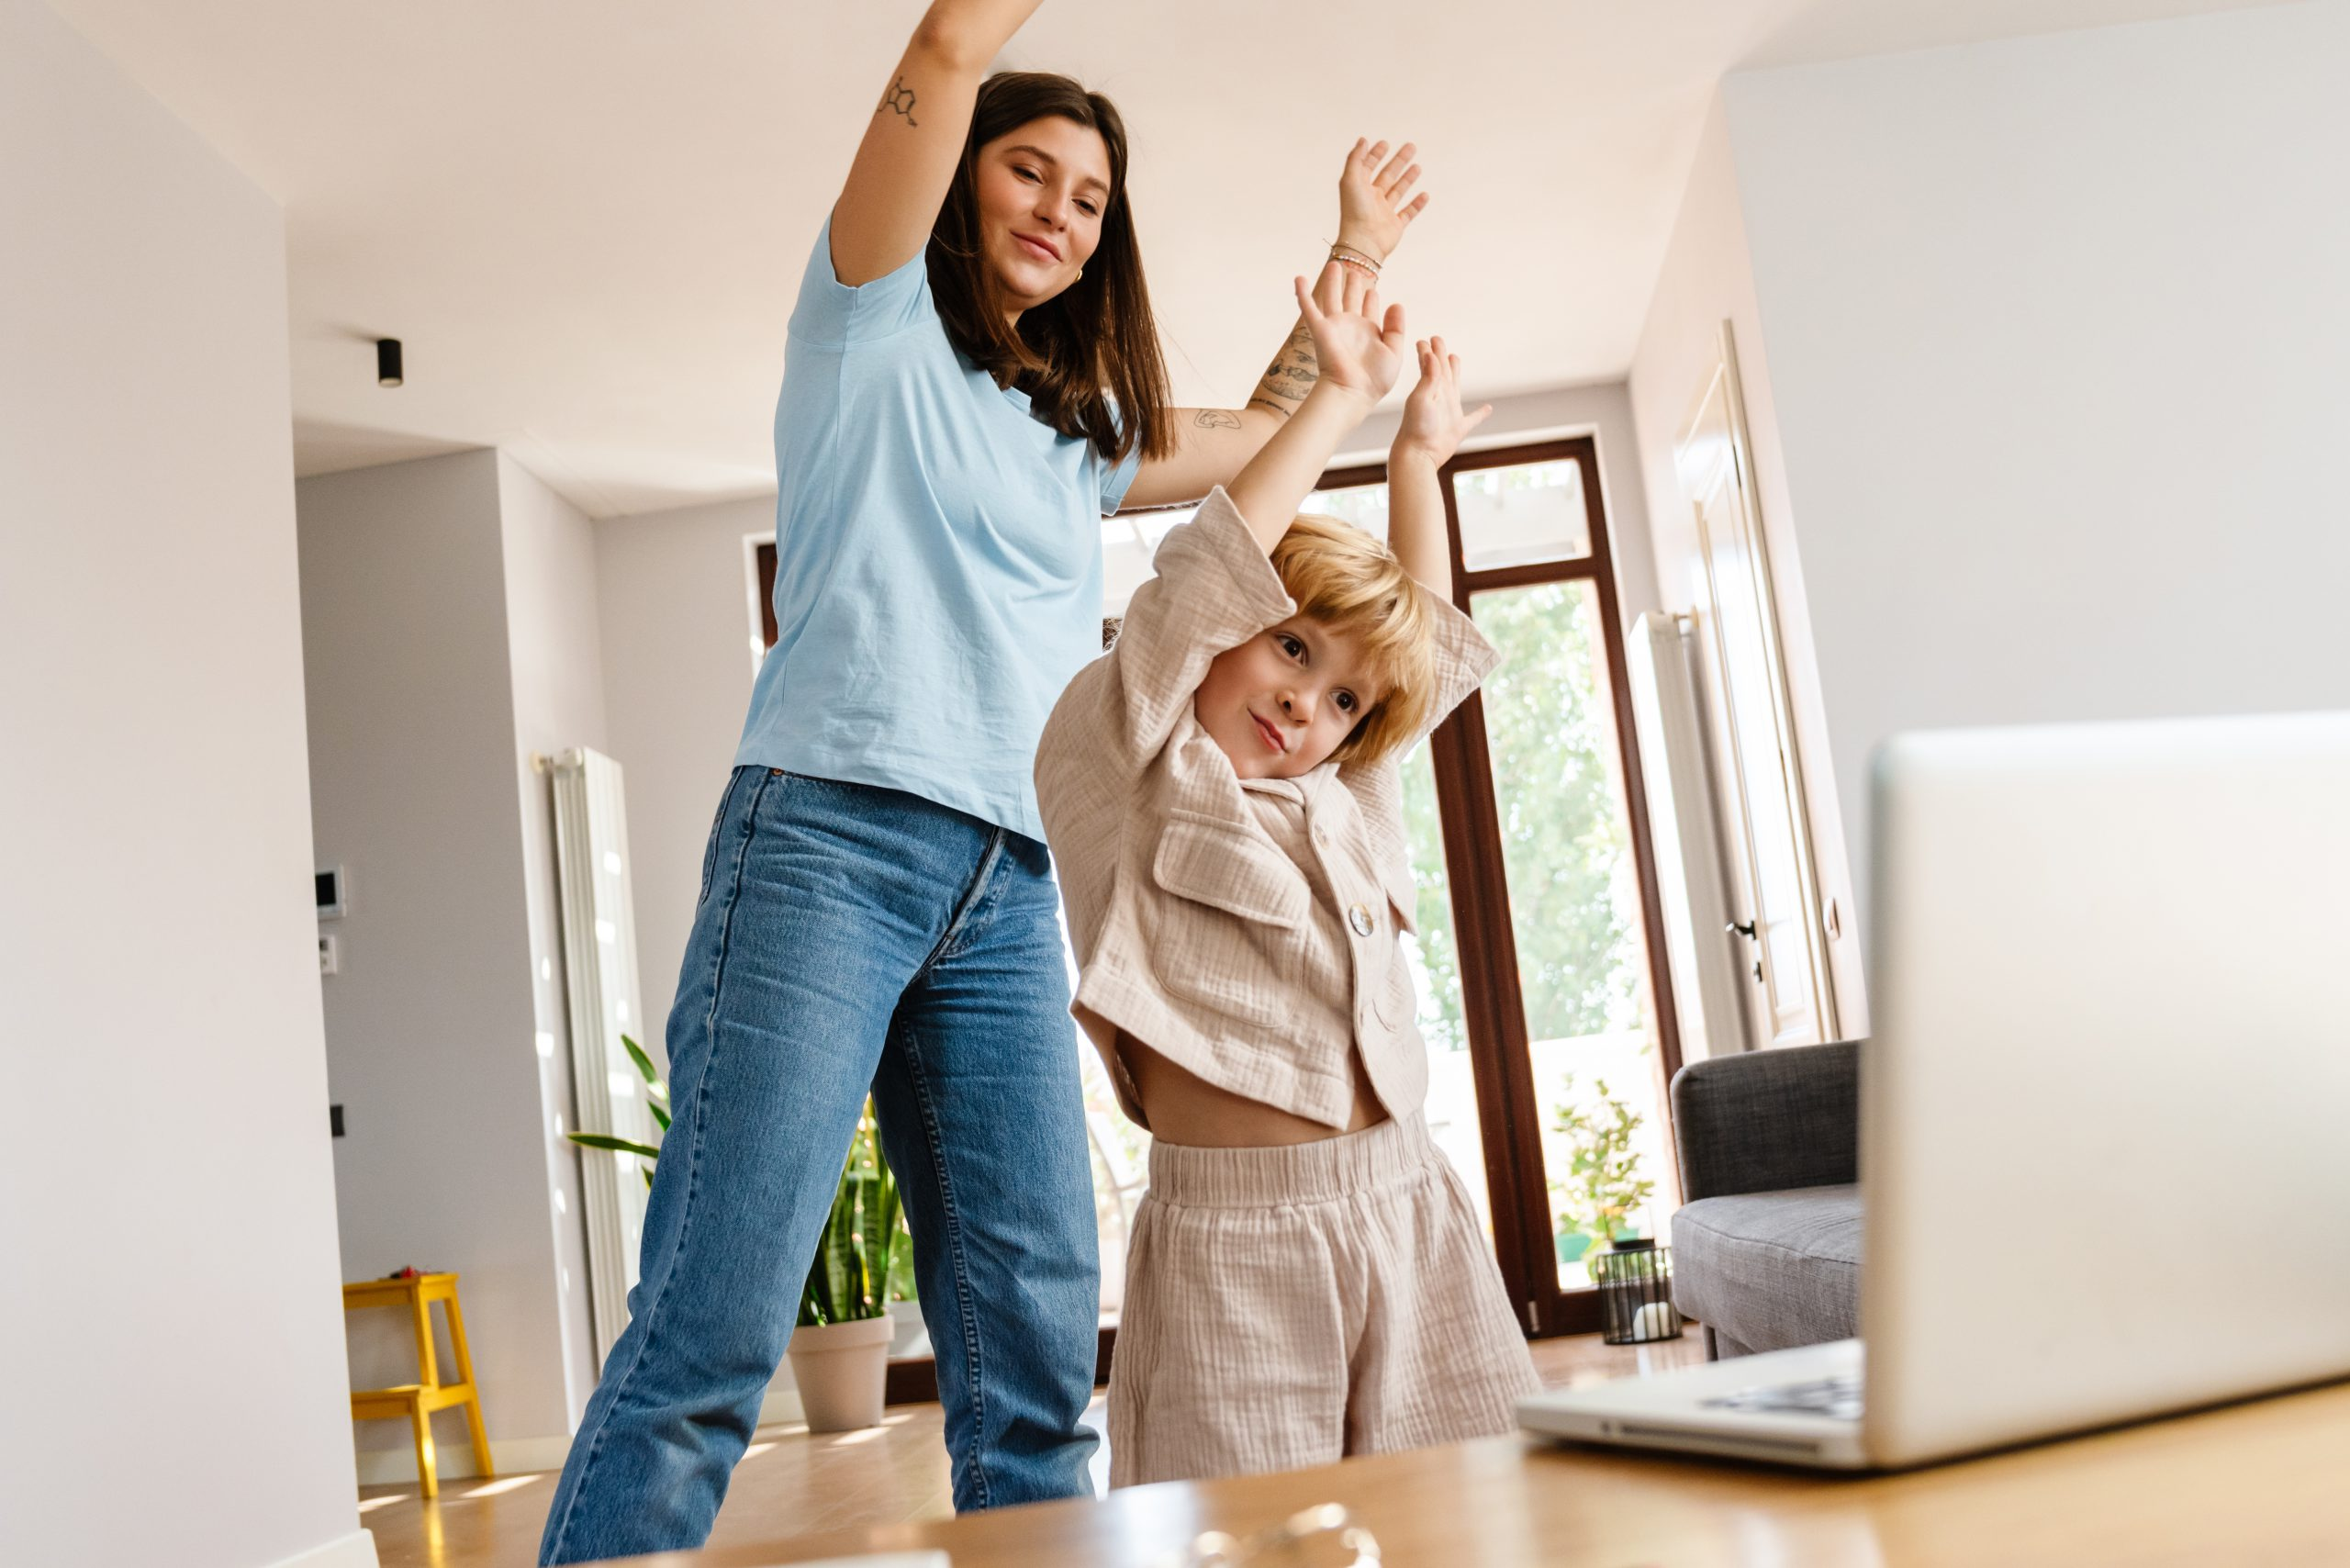 Photo of young positive beautiful woman at home with her son exercising while looking at laptop computer